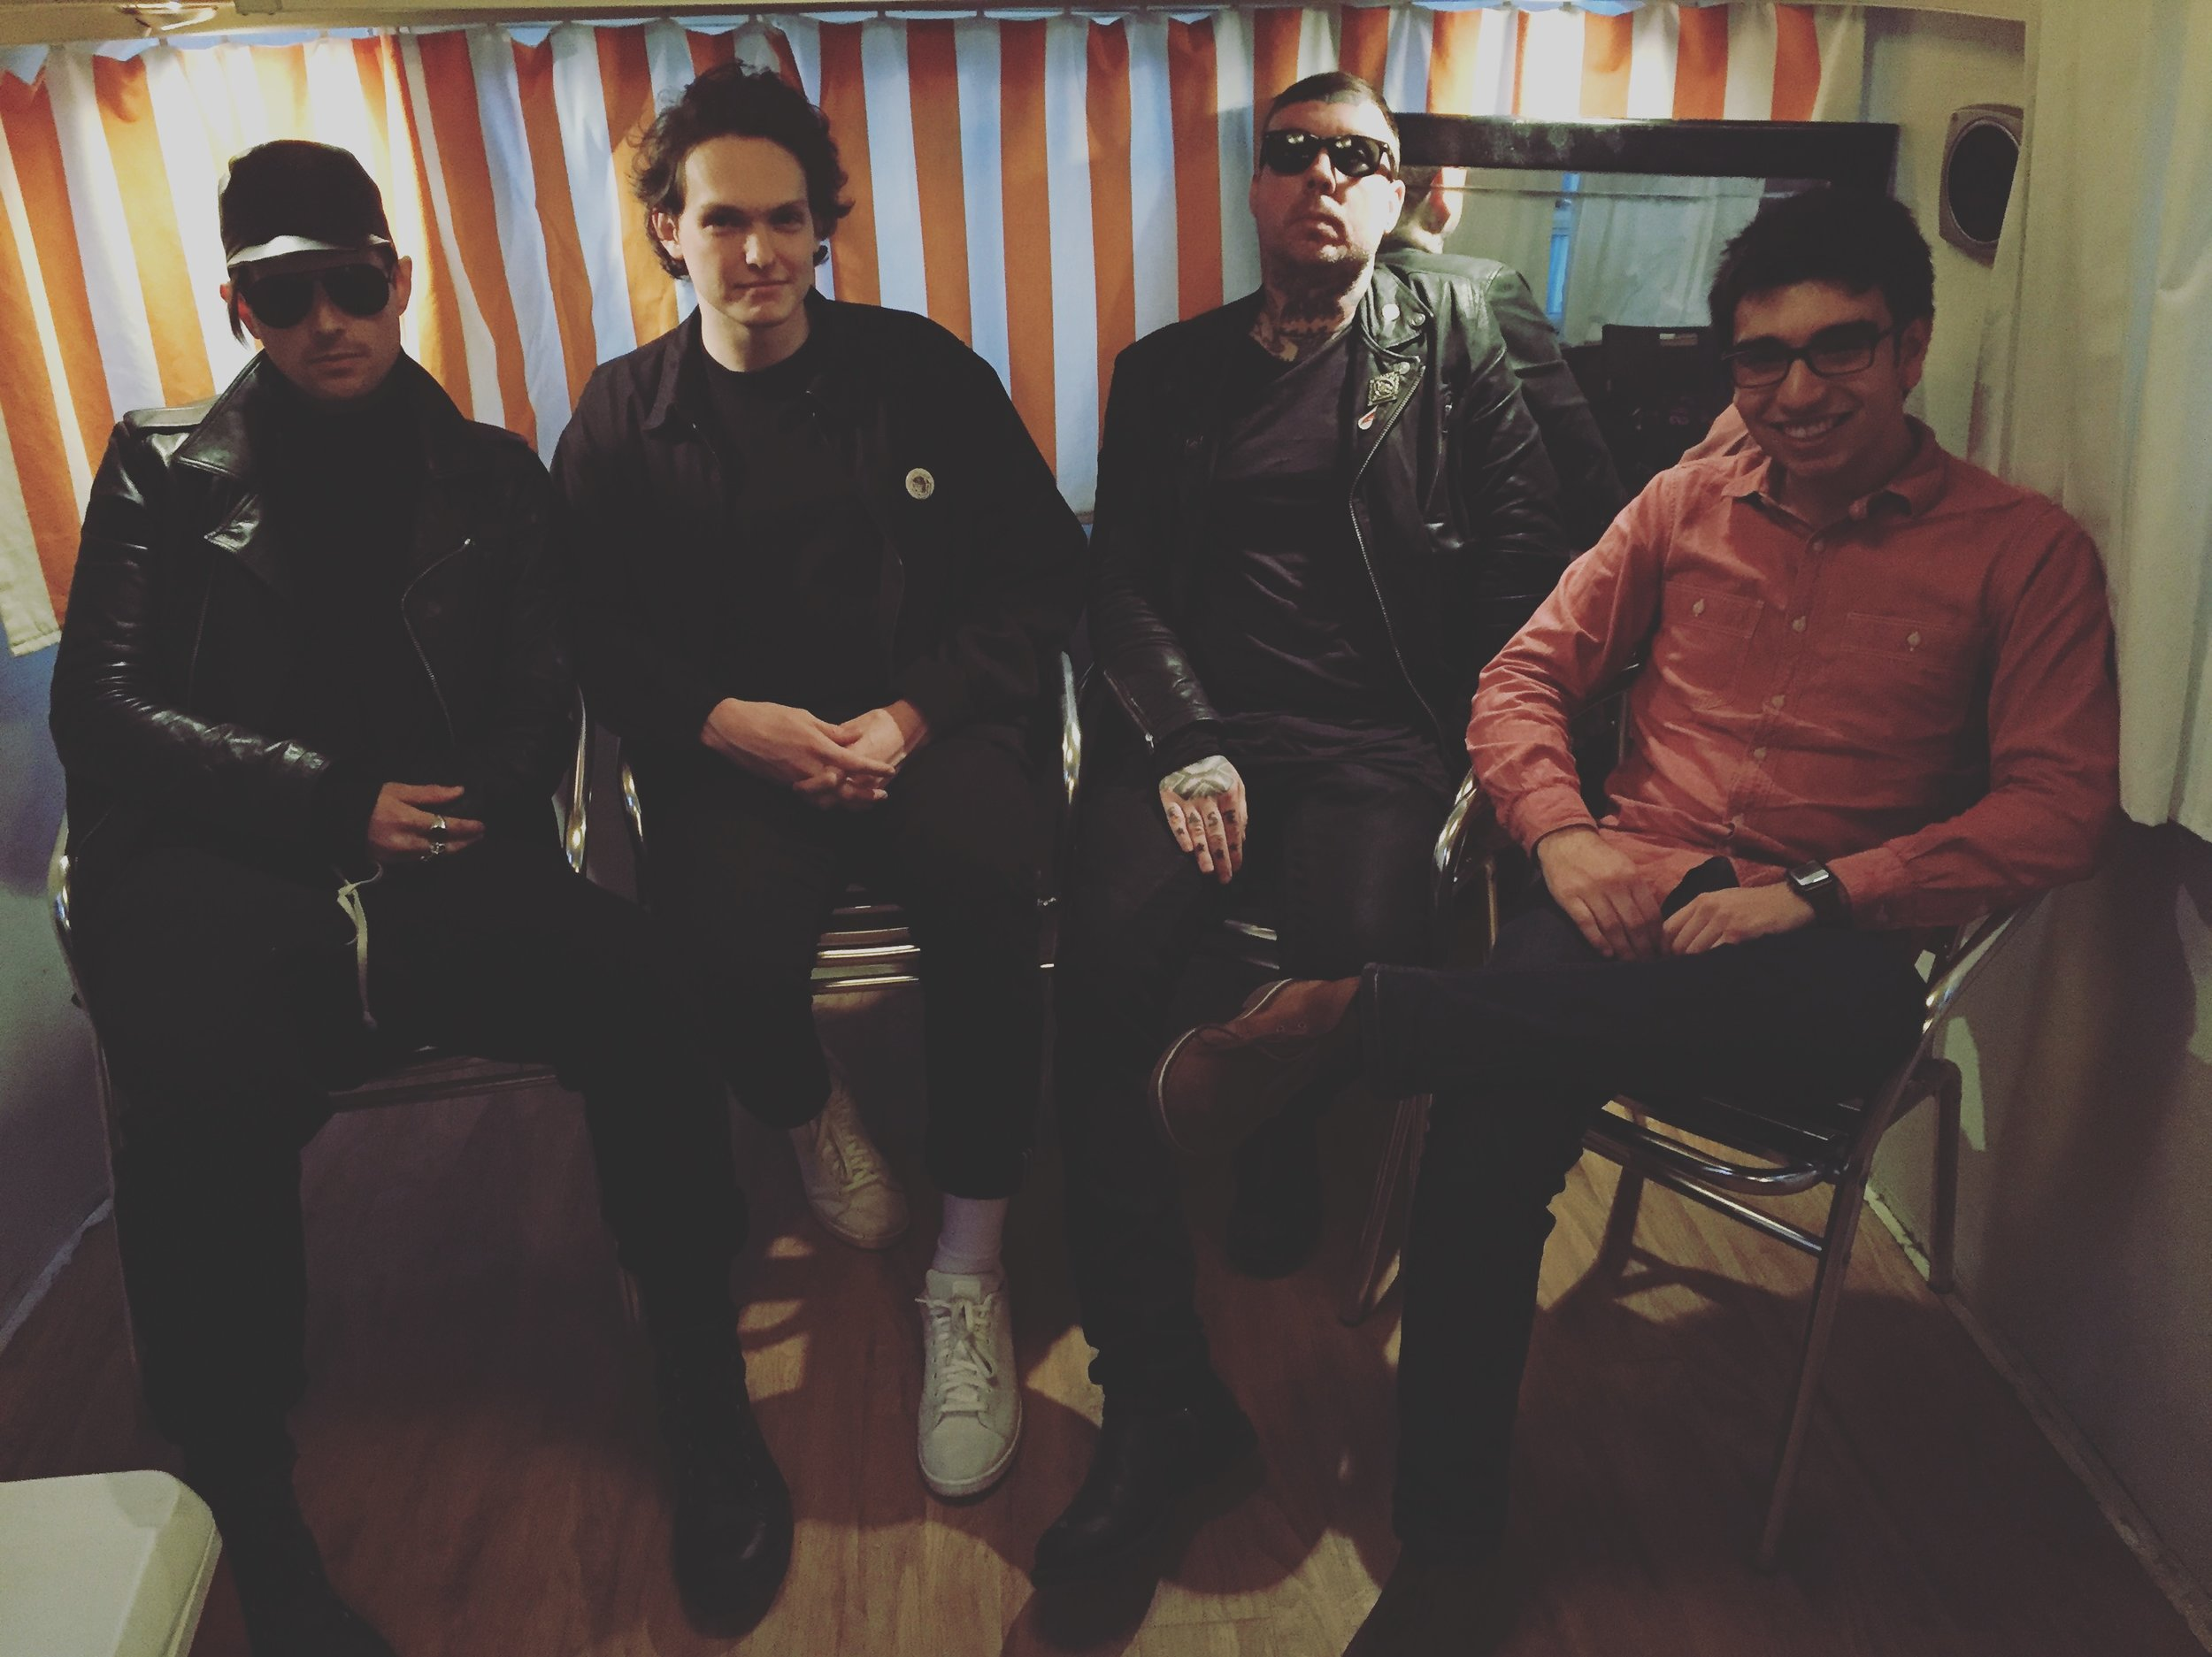 Cold Cave with KRTU staff backstage